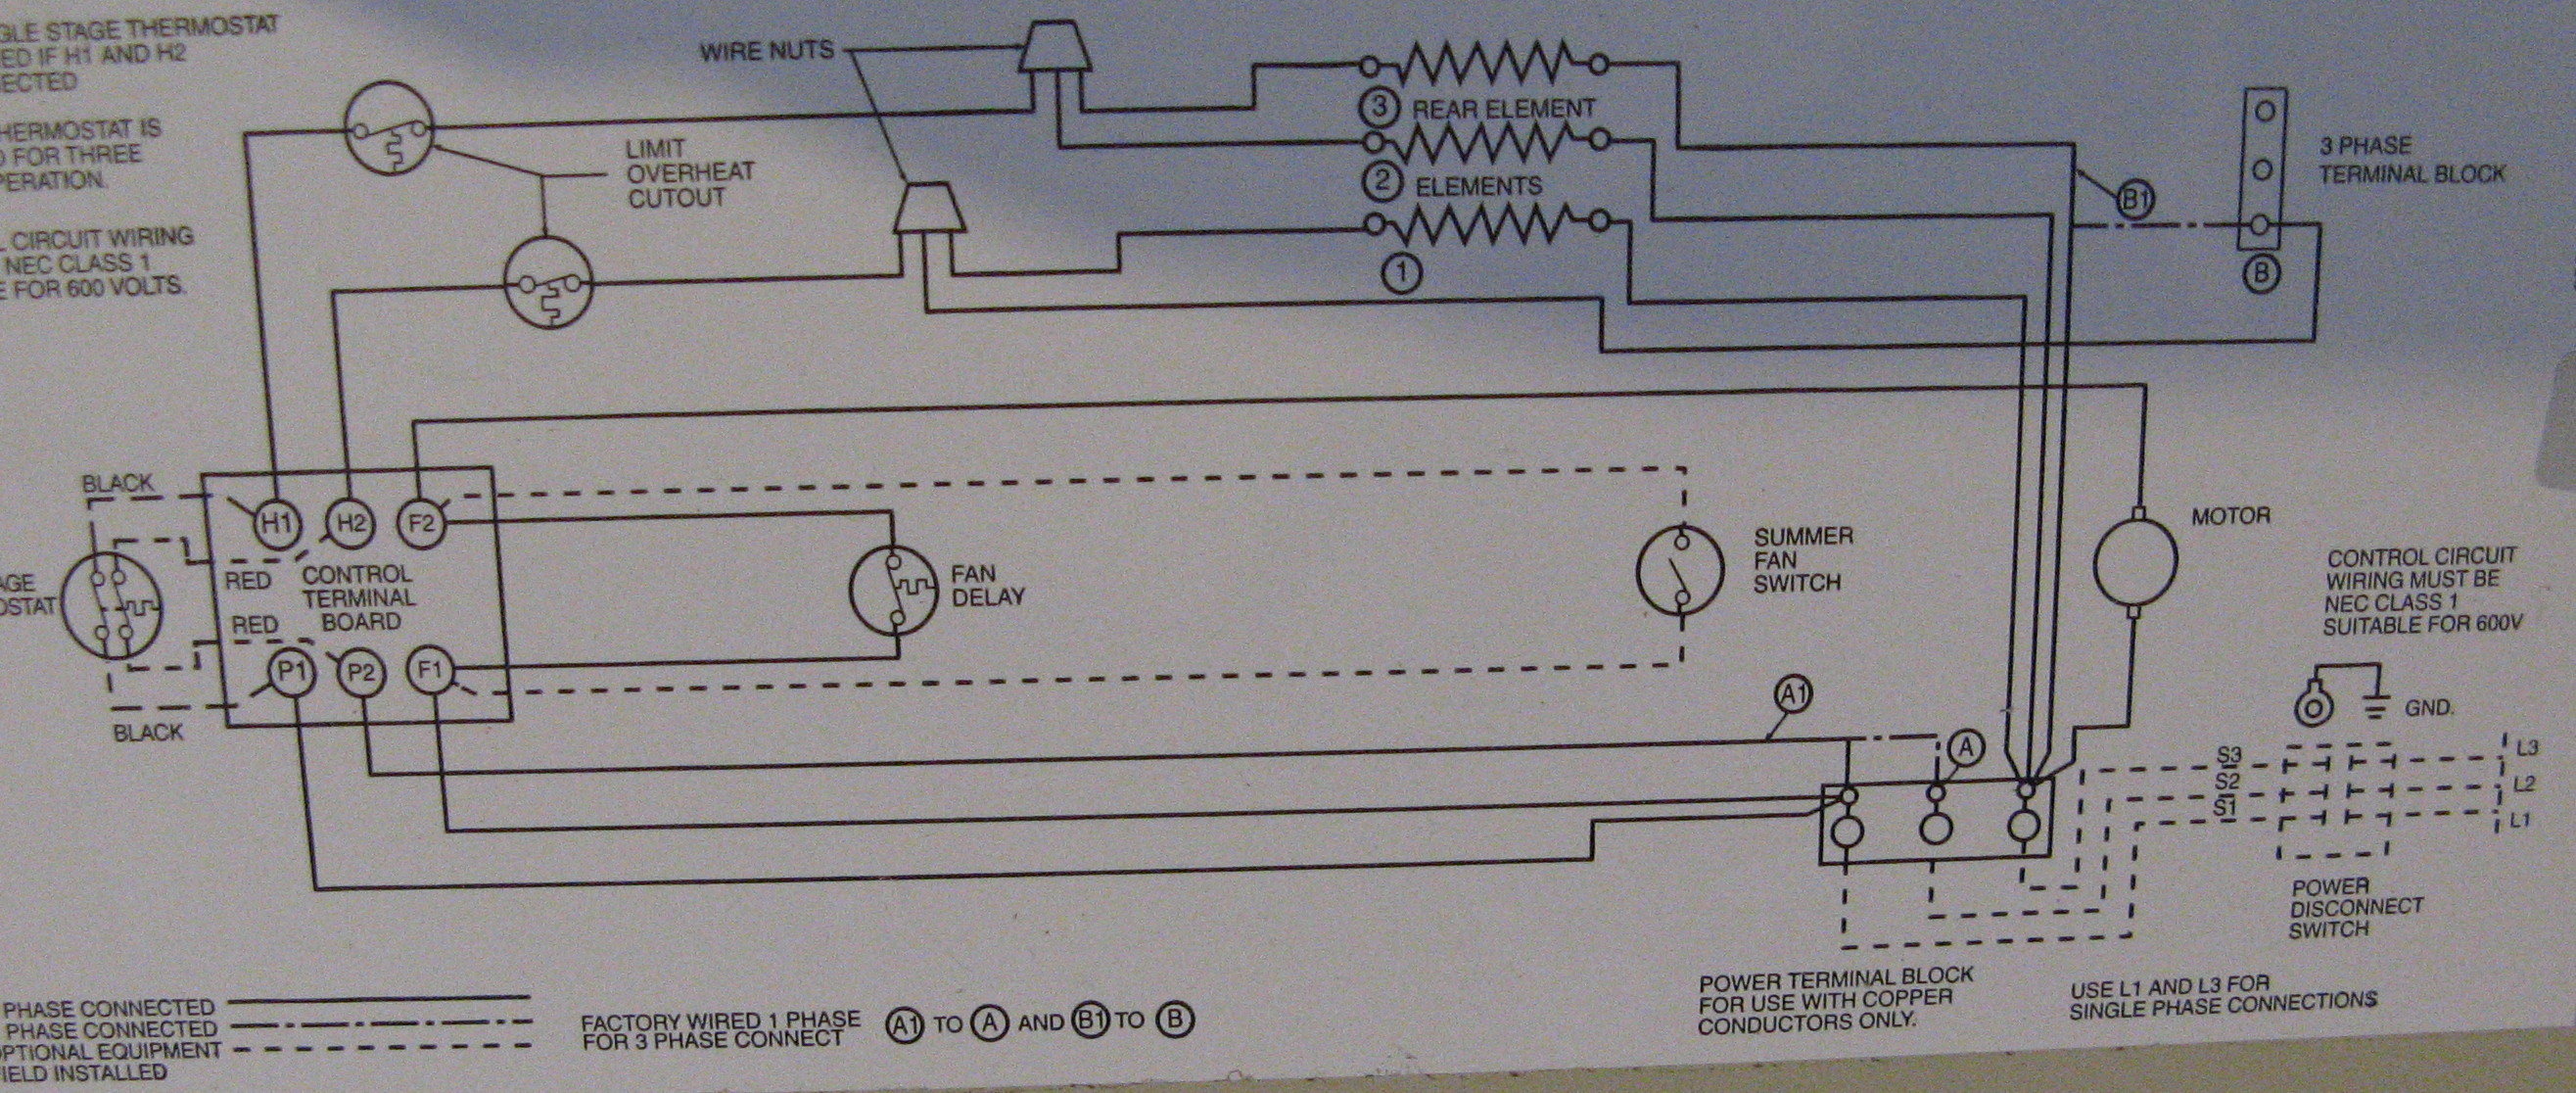 dayton unit heater wiring diagram   33 wiring diagram